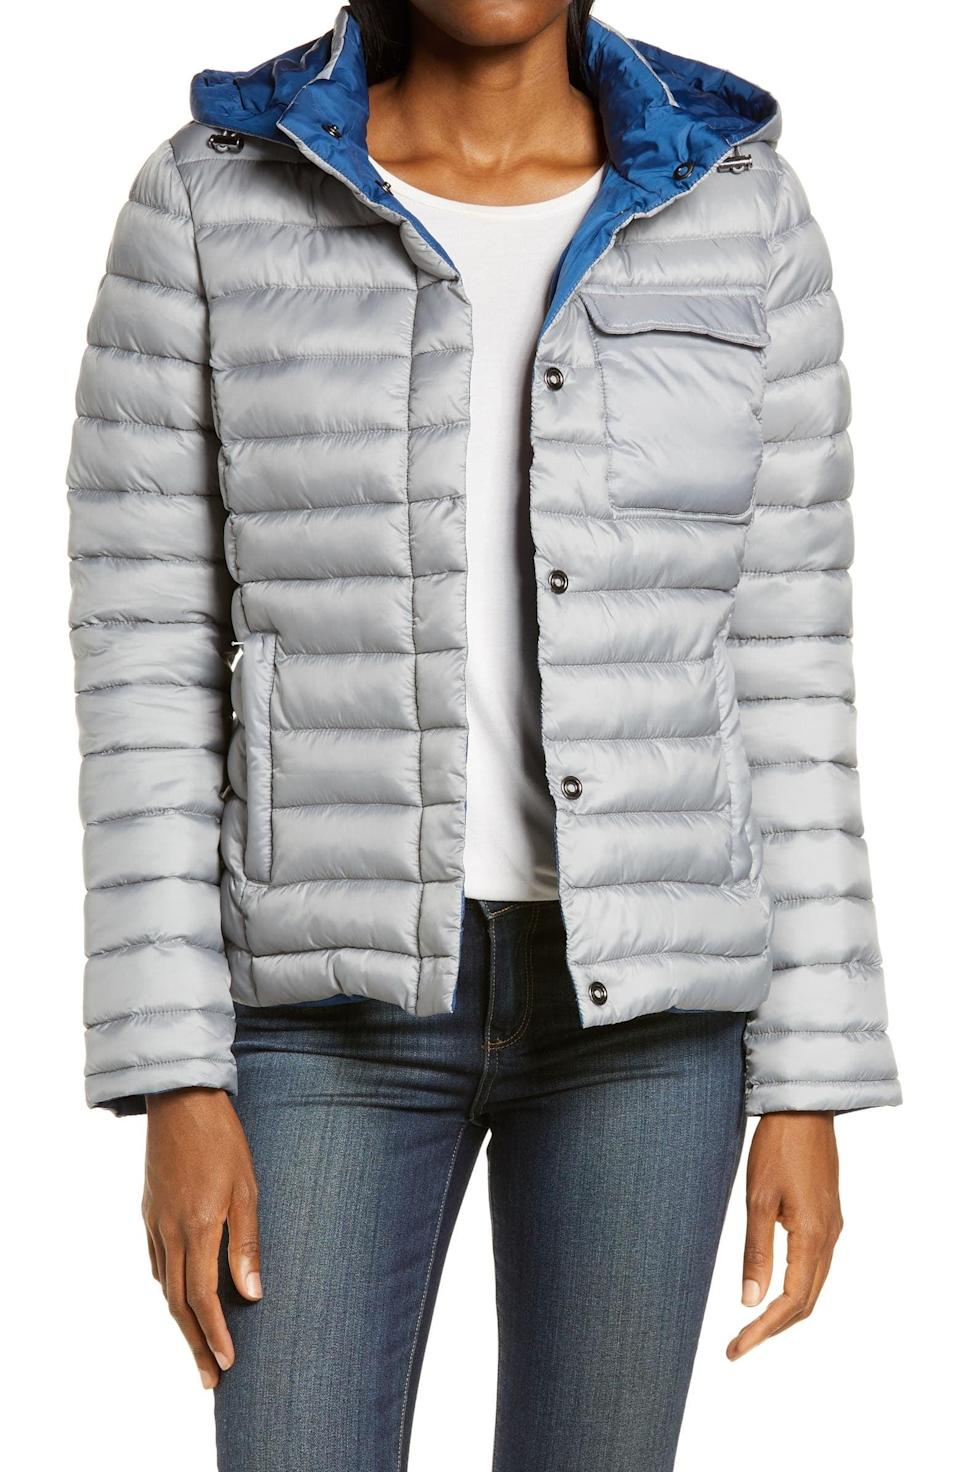 <p><span>Zella Ultralight Reversible Puffer Jacket With Removable Hood</span> ($59, originally $99)</p>